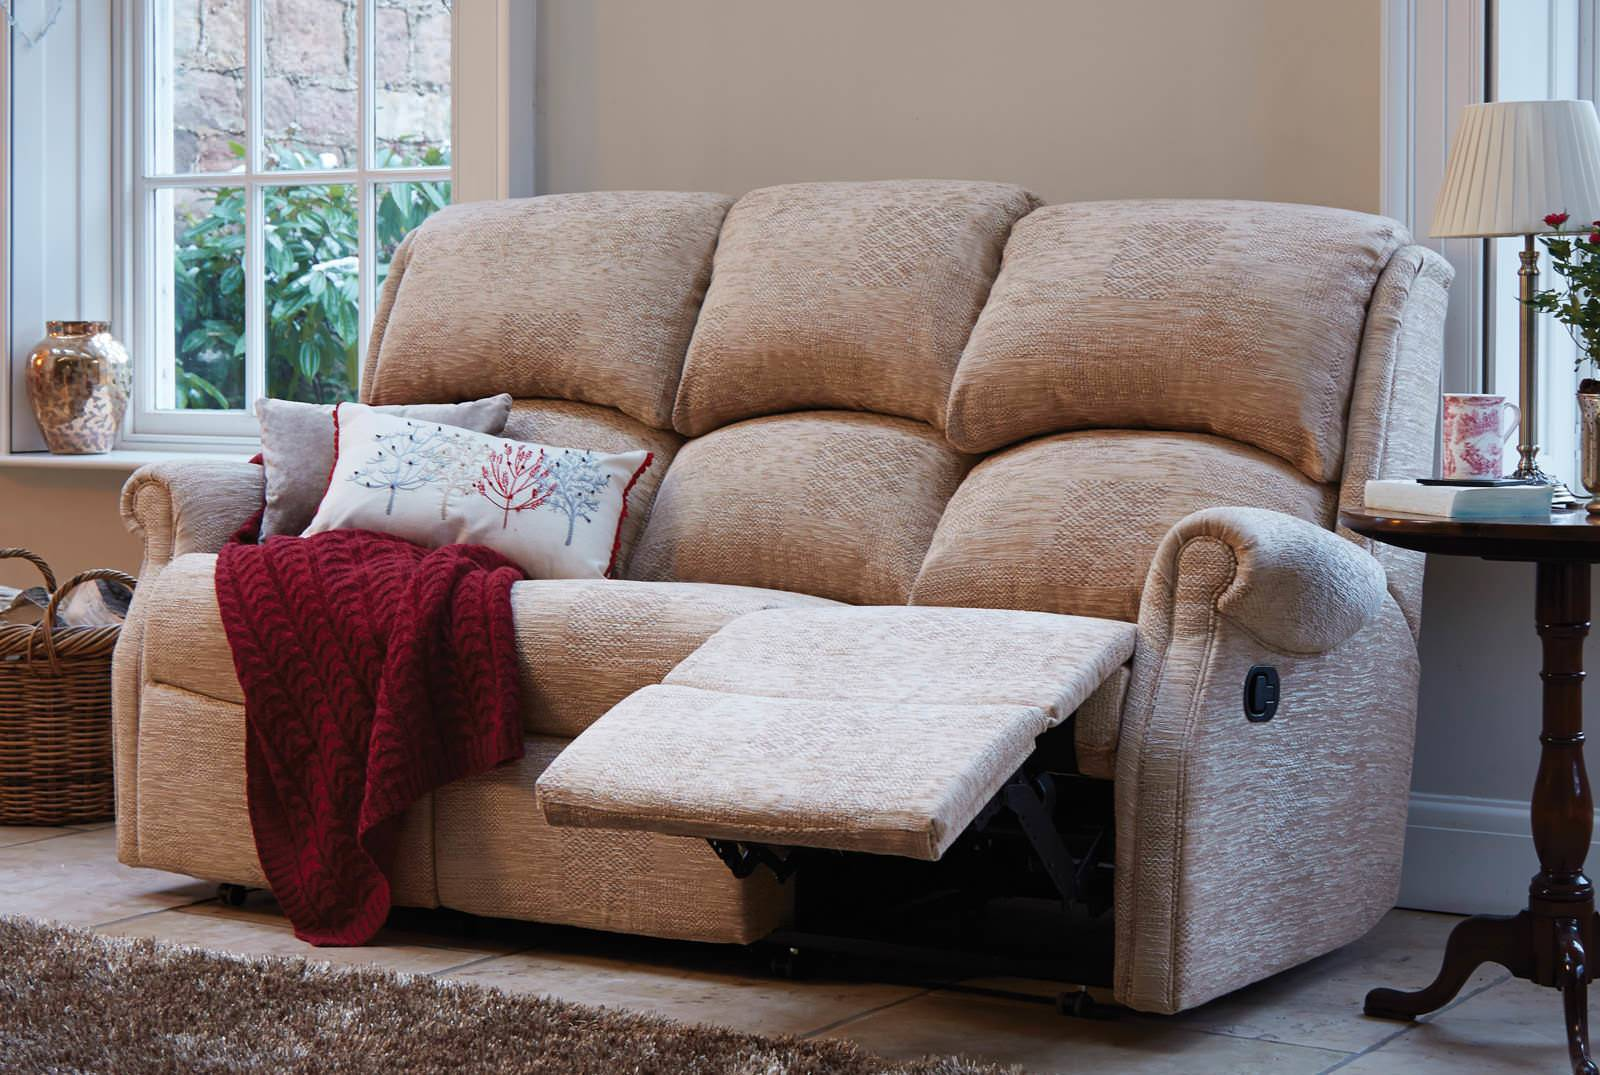 Berwick Three-Seater Catch Recliner Sofa in Patchwork Jute